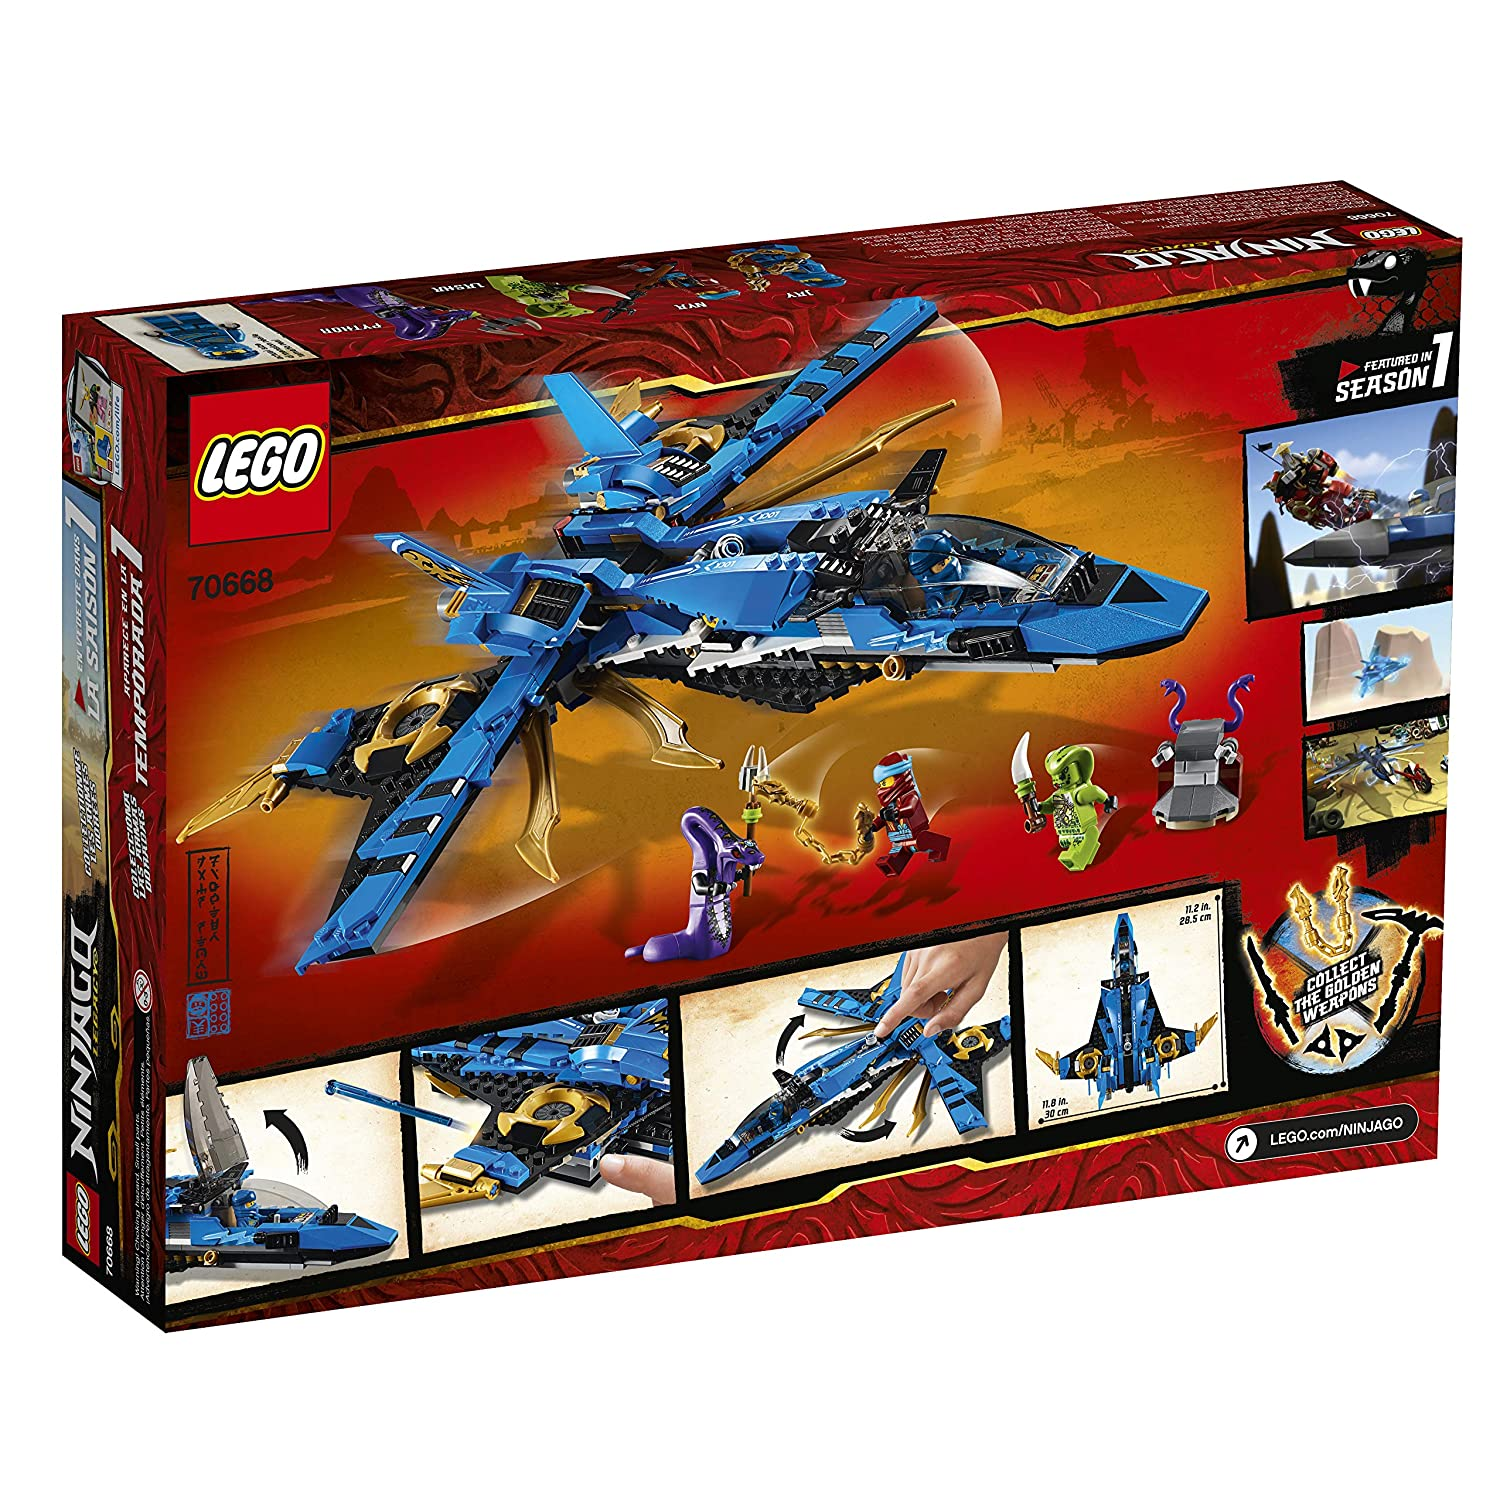 490 Pieces LEGO NINJAGO Legacy Jay/'s Storm Fighter 70668 Building Kit